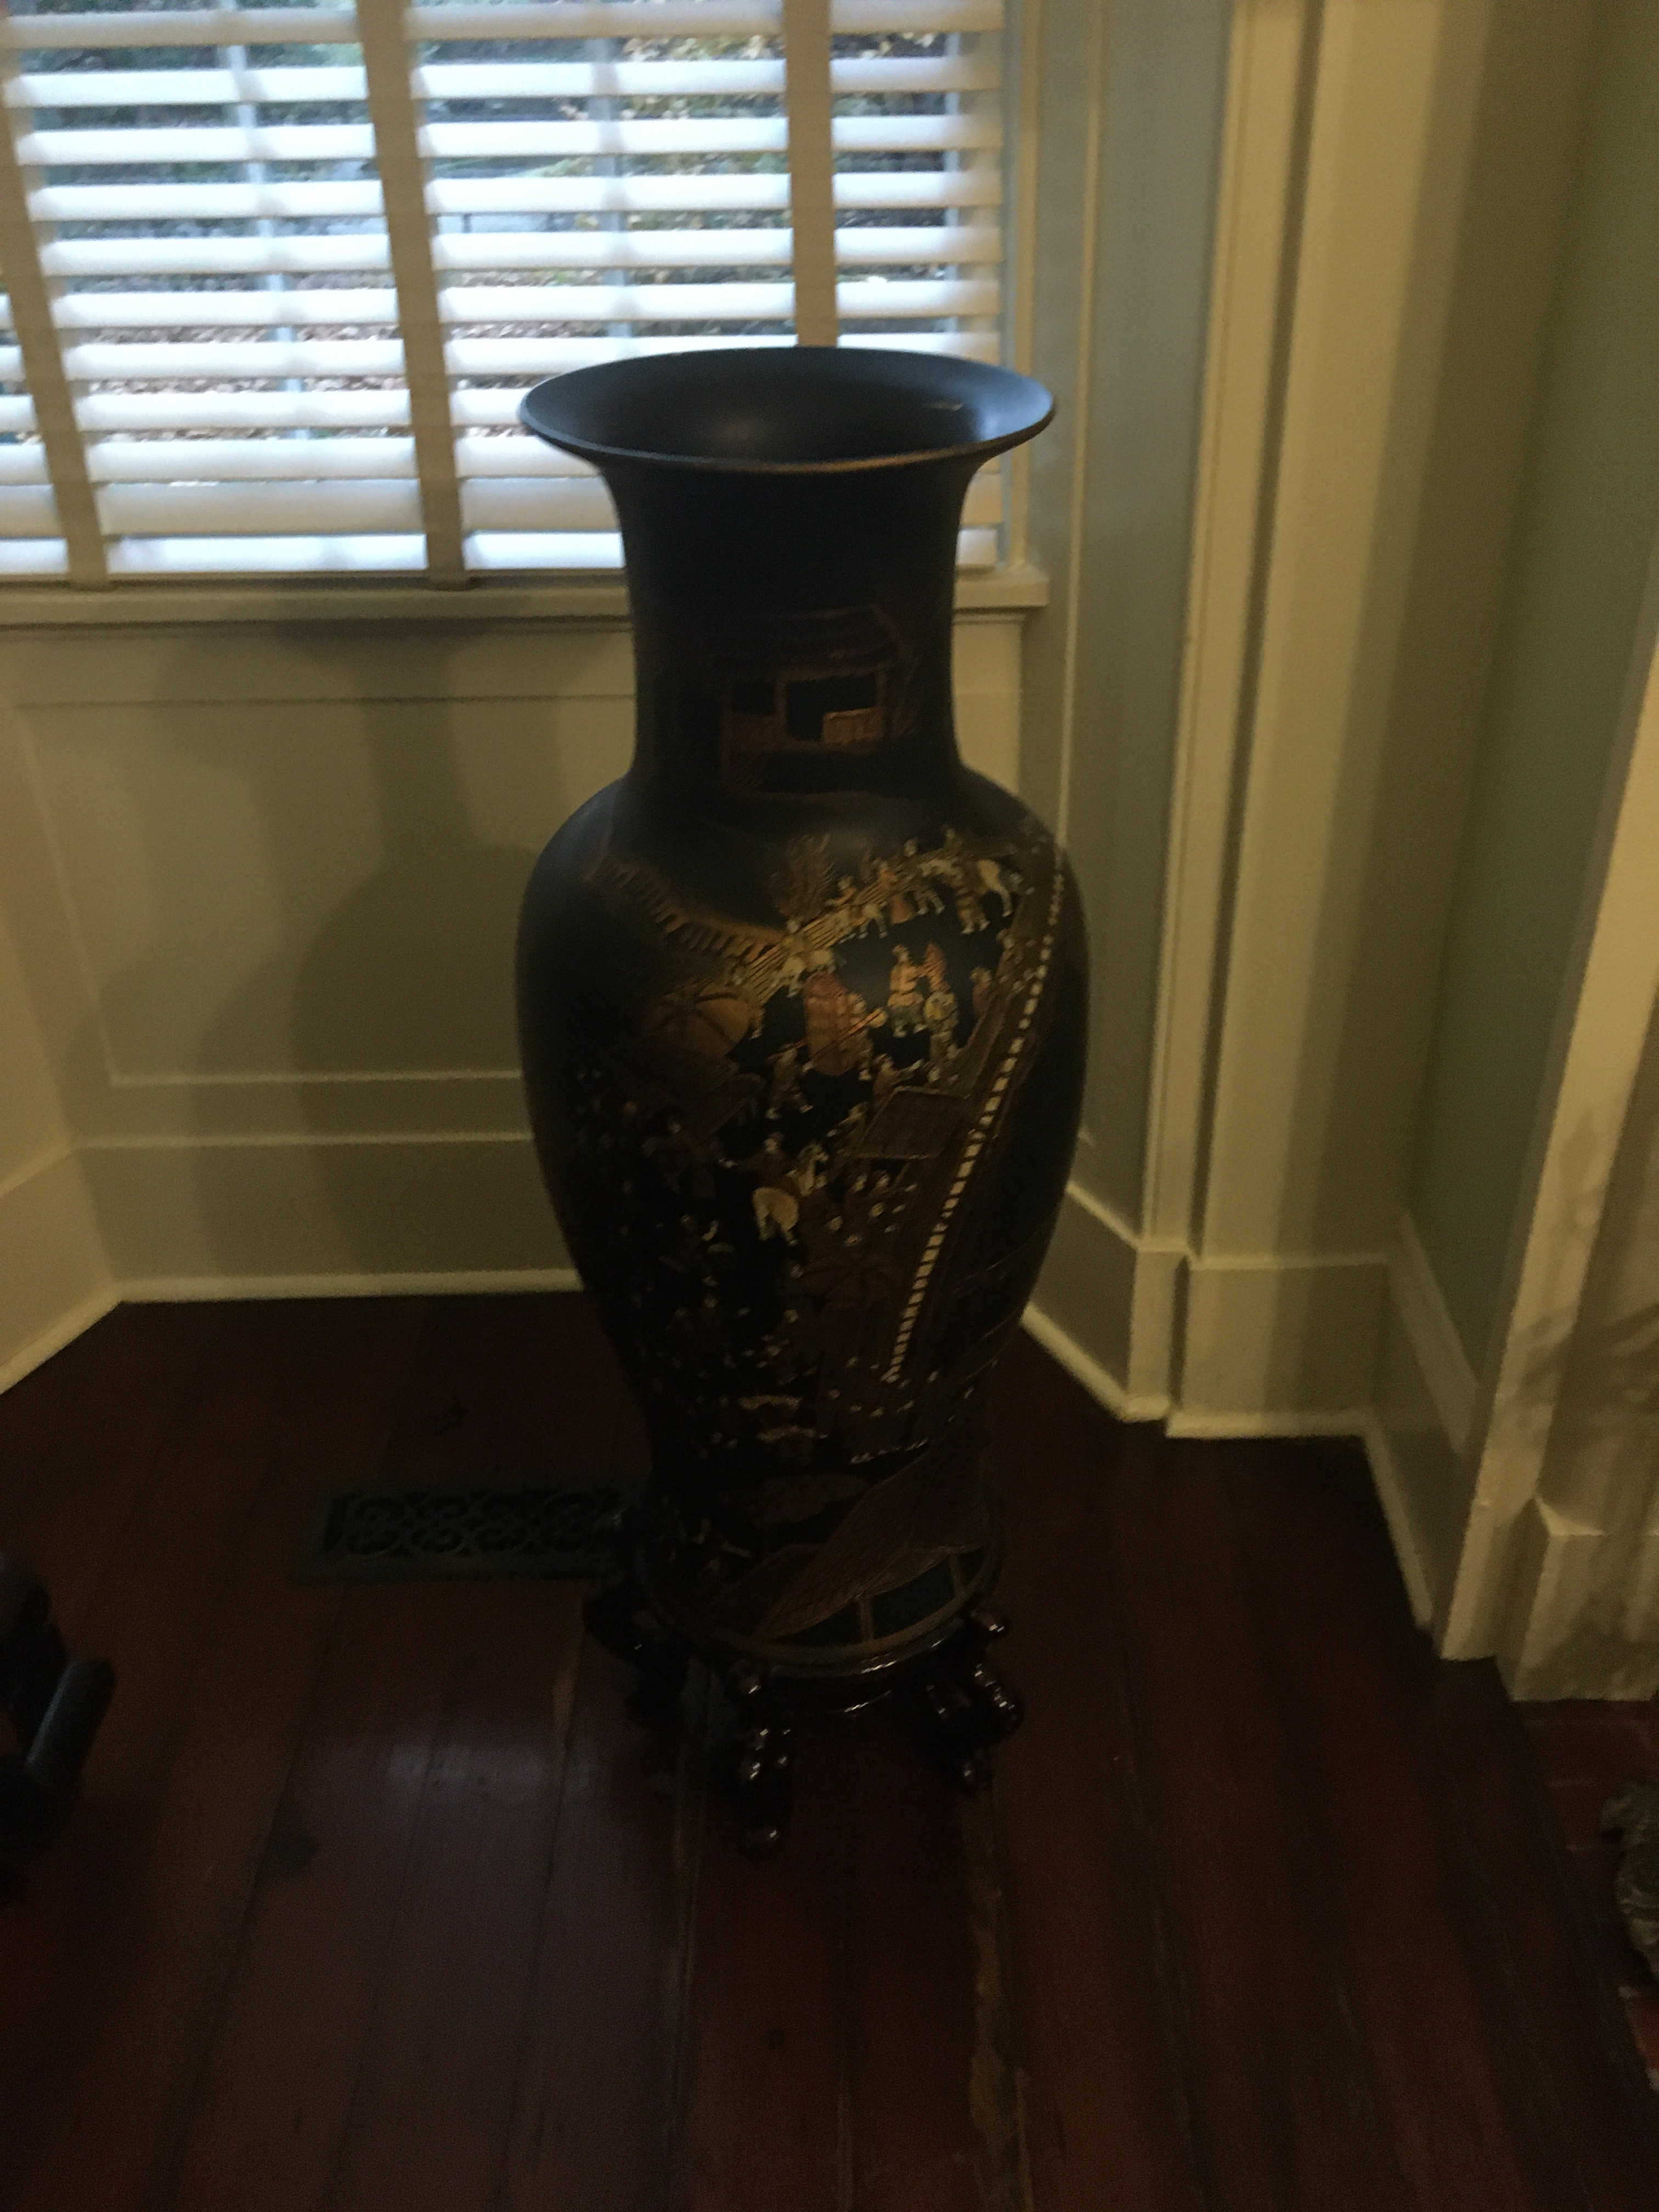 Foreign made vase, possibly from China, extremely Old